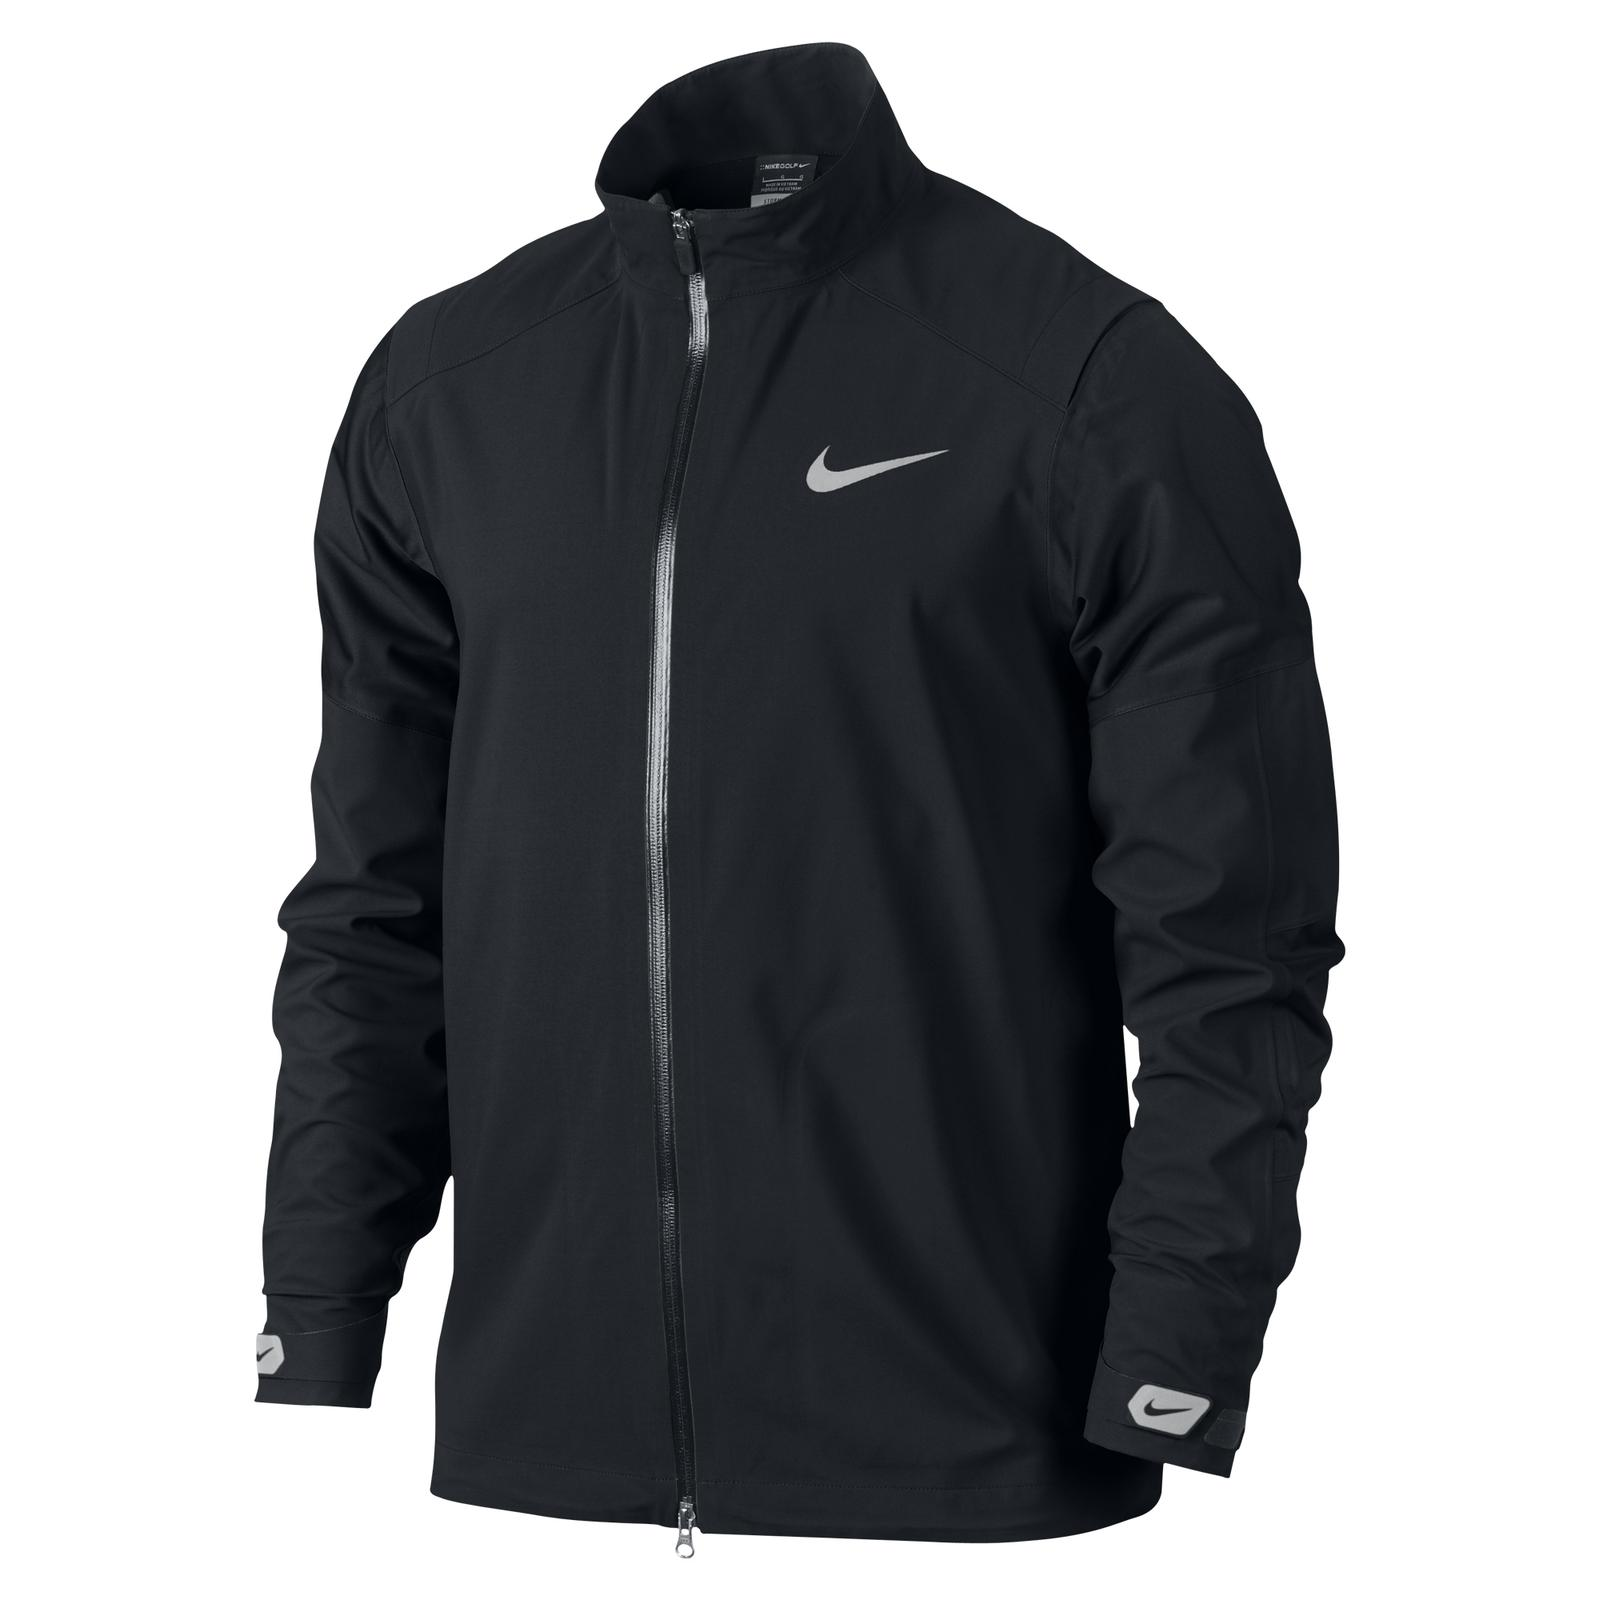 Nike Golf Redefines Outerwear With Nike Hyperadapt Storm